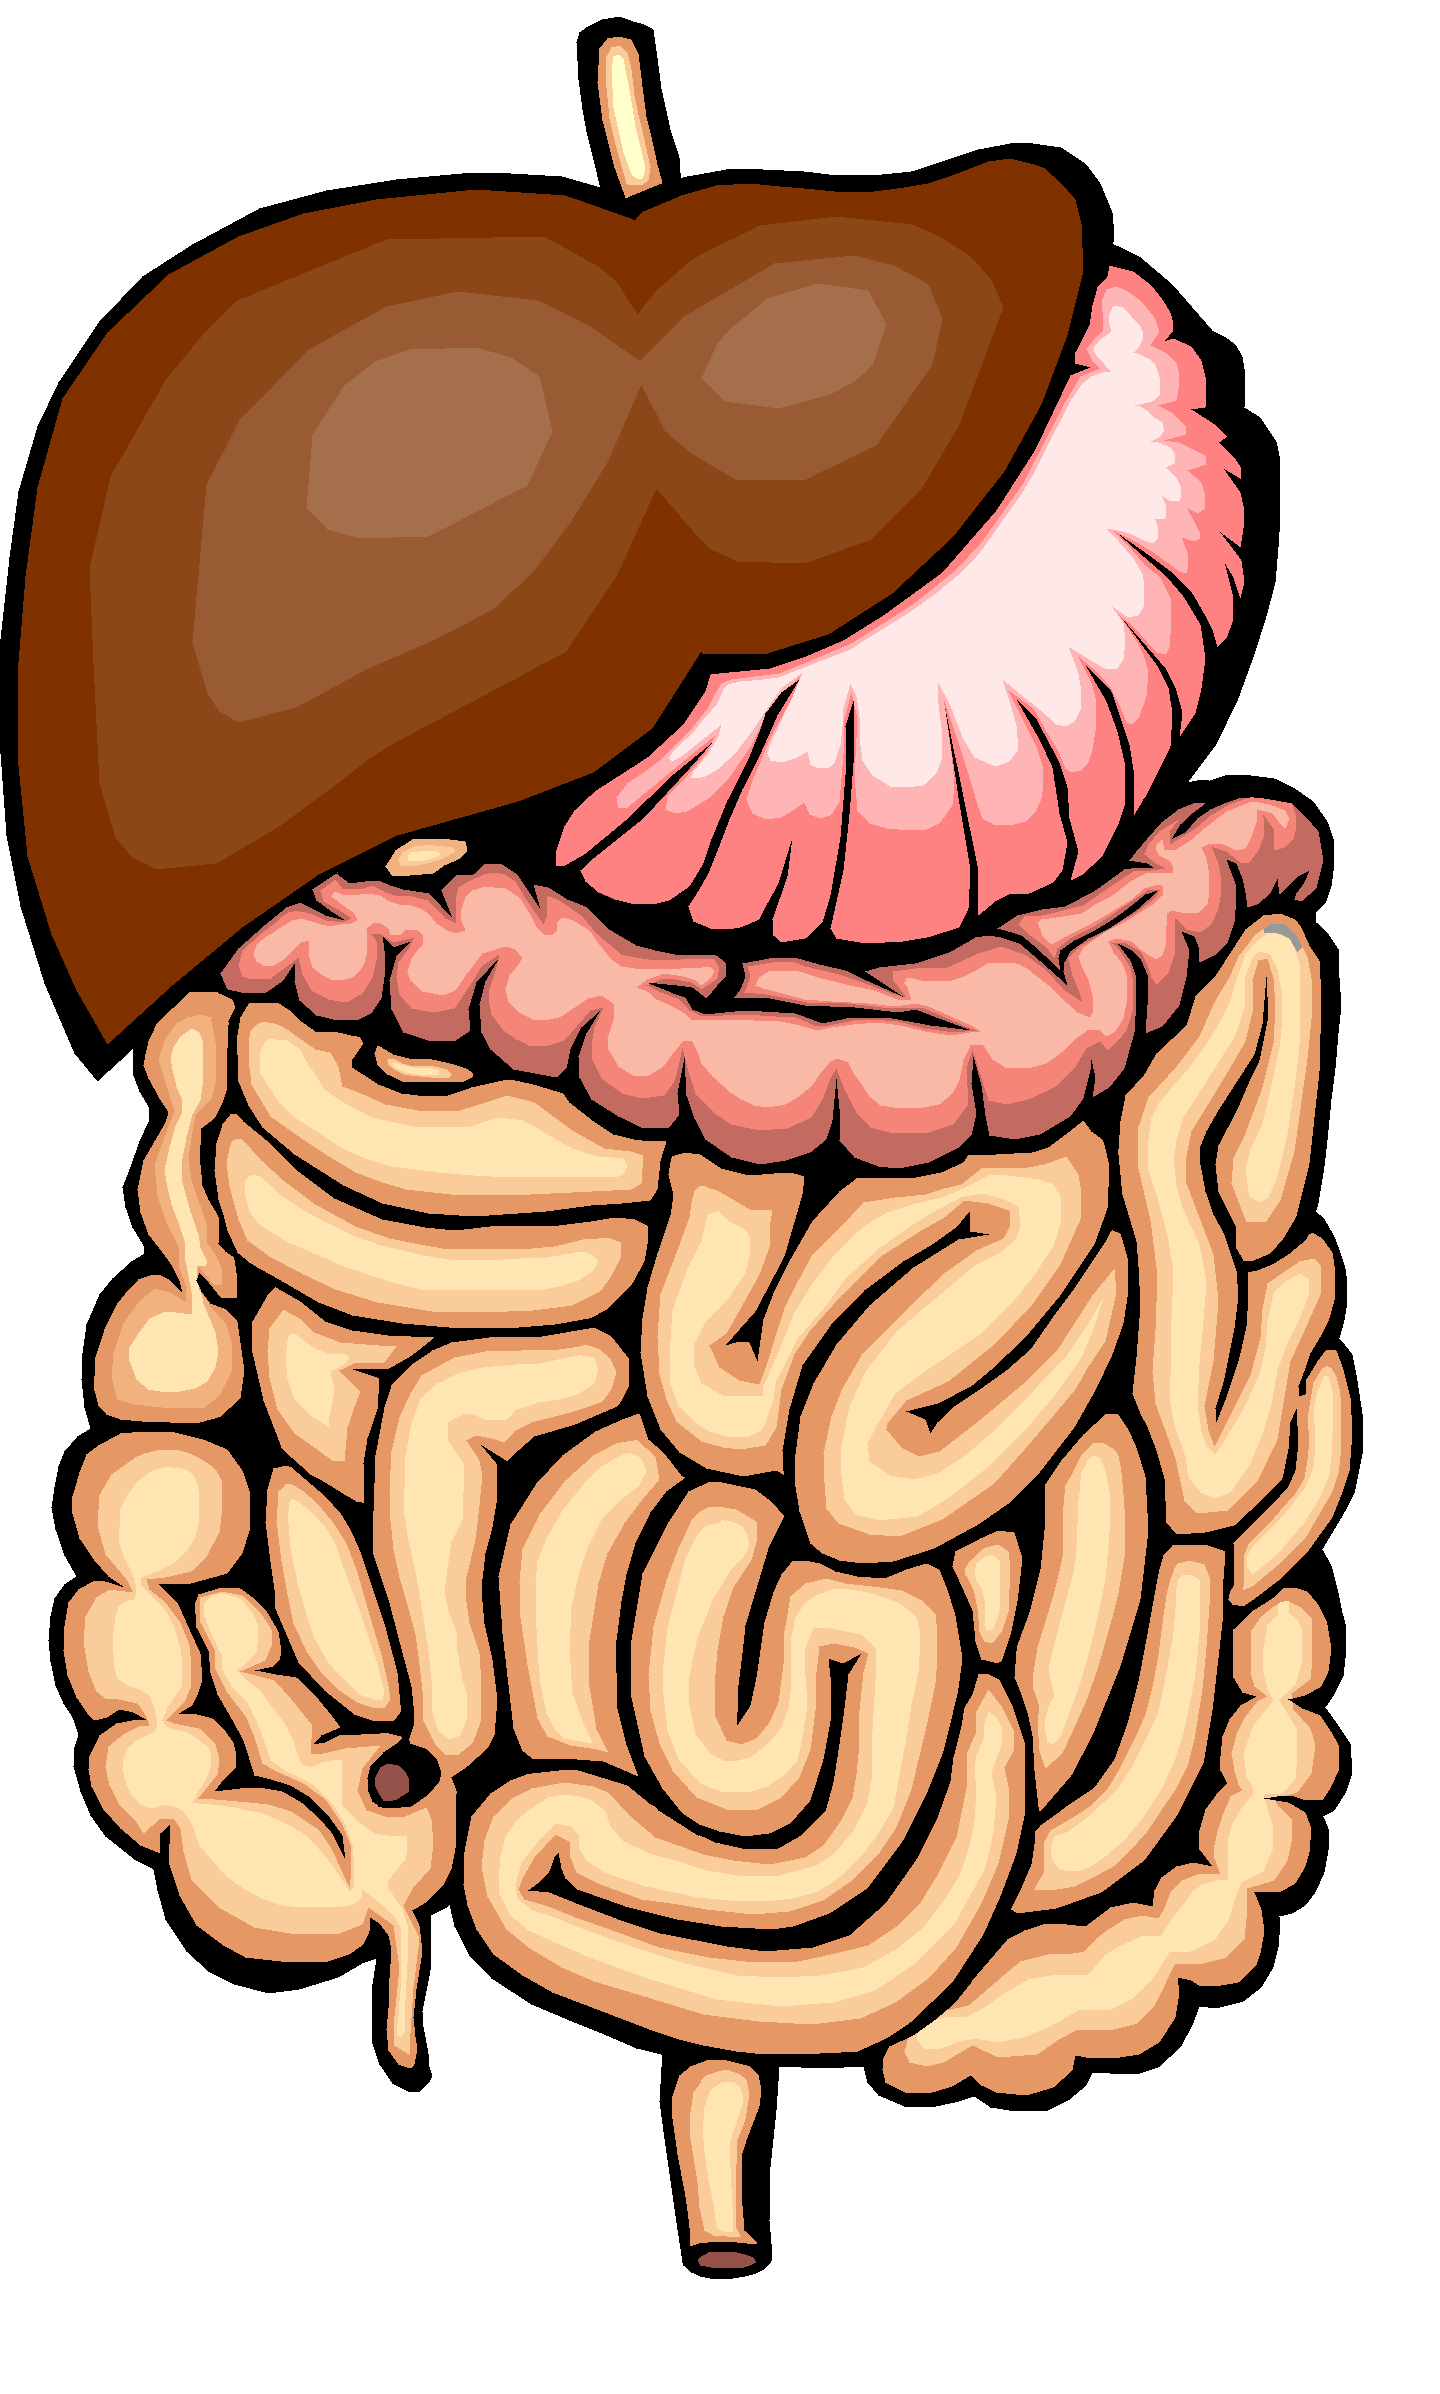 Mouth clipart digestive system mouth. The pptx esophagus